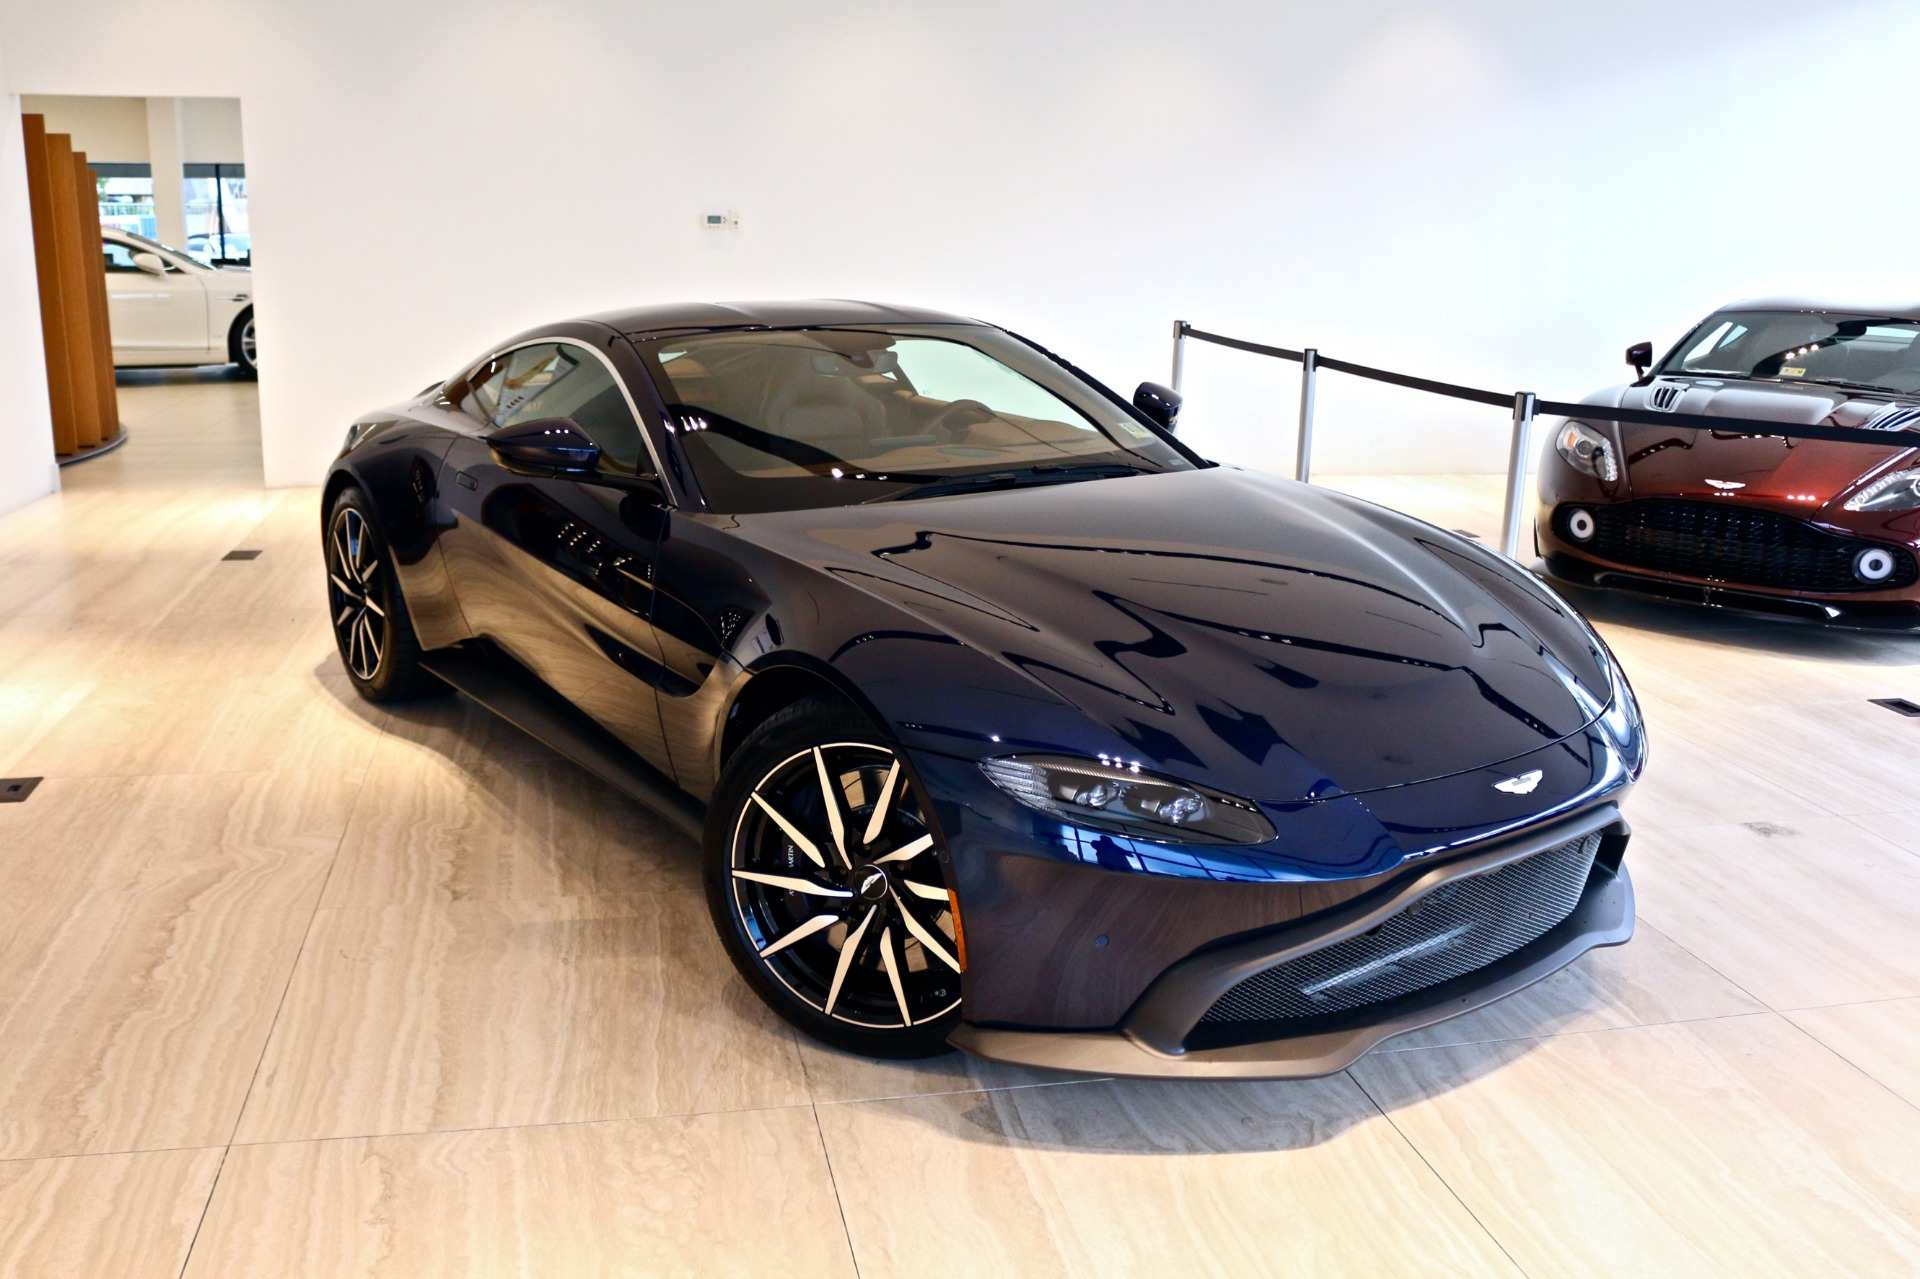 64 Gallery of 2019 Aston Martin Vantage For Sale Rumors by 2019 Aston Martin Vantage For Sale